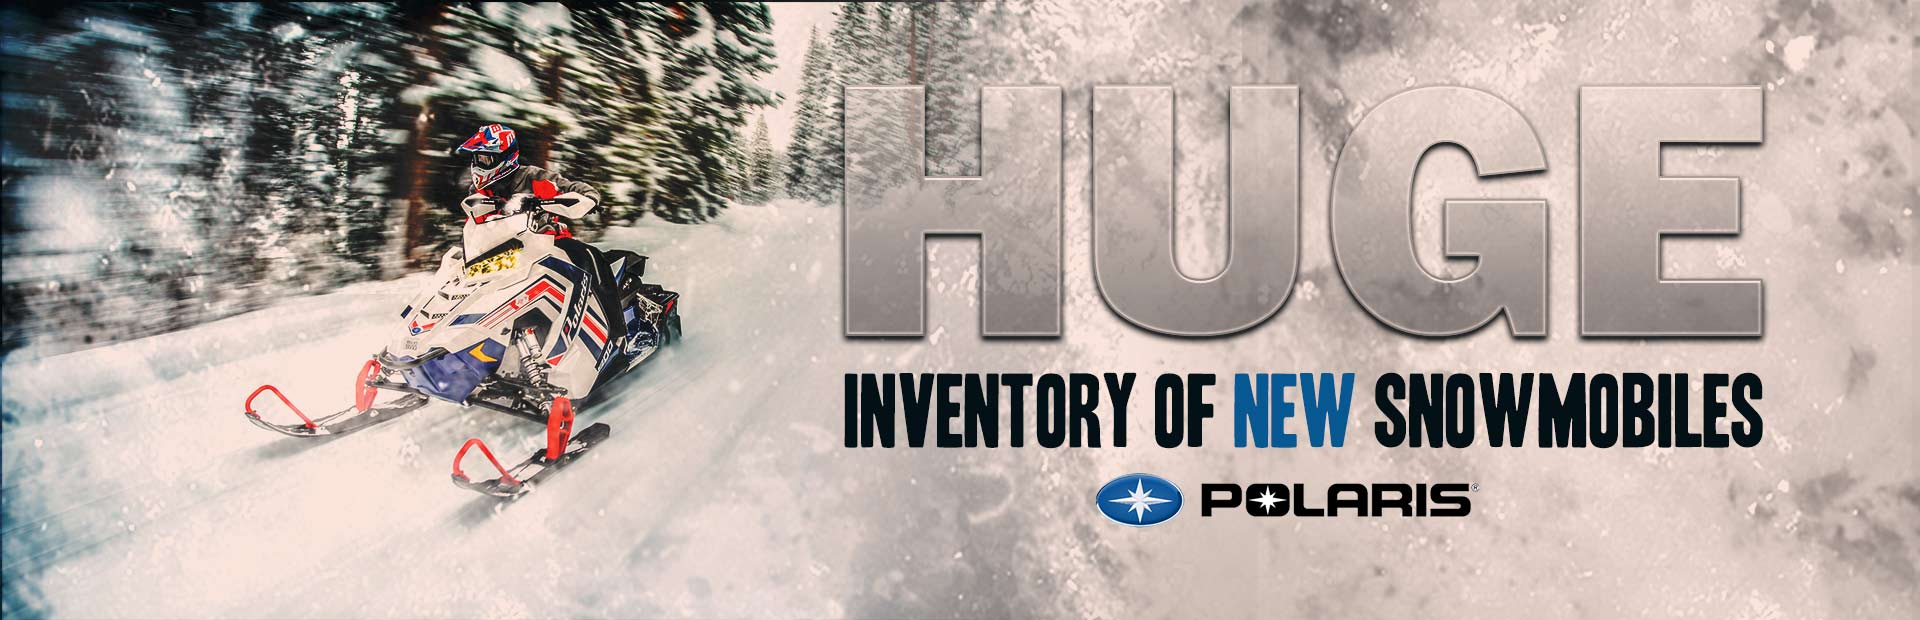 Click here to check out our huge inventory of Polaris snowmobiles!